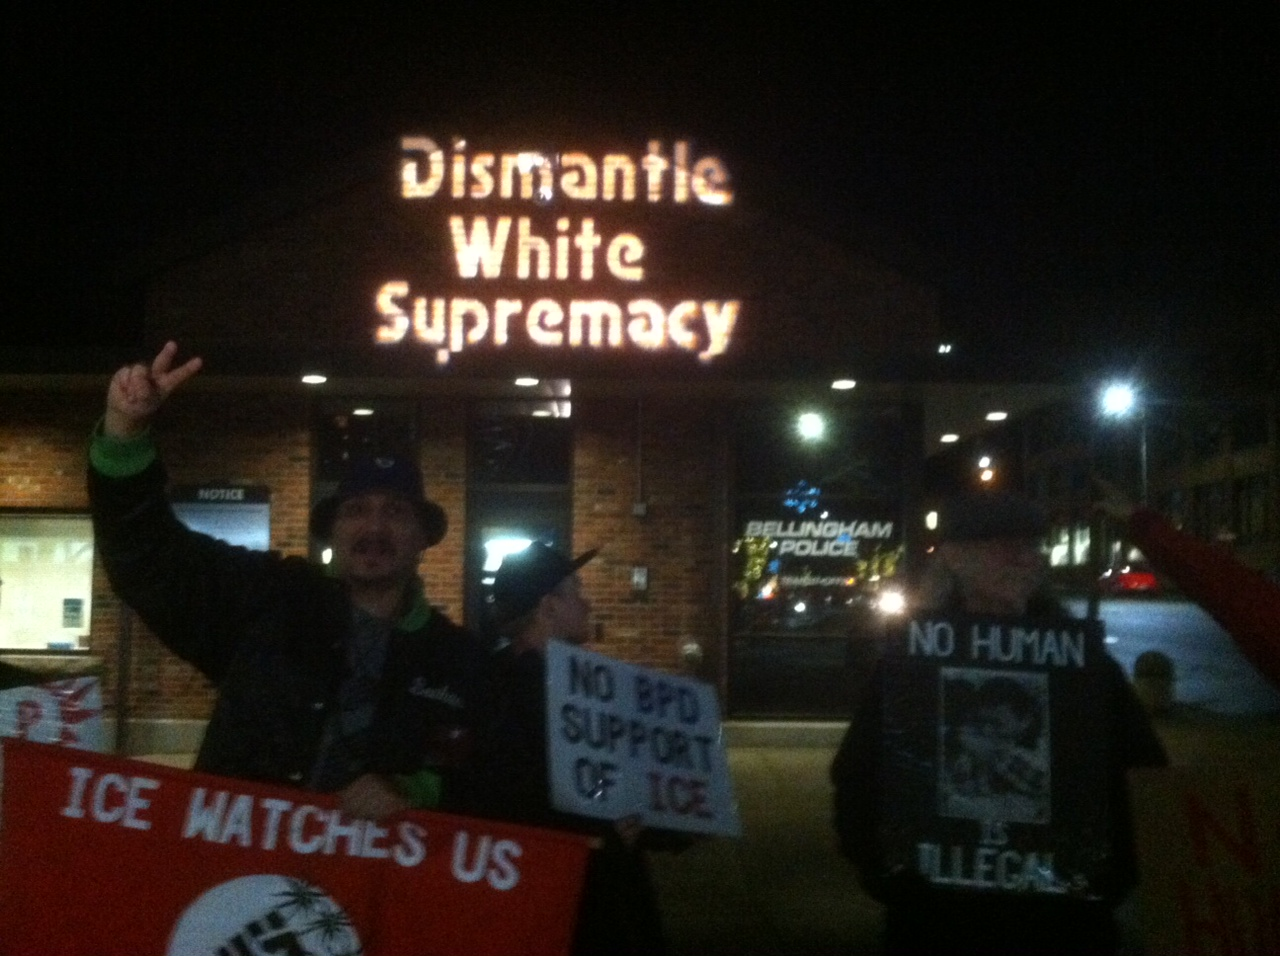 Bellingham_Solidarity_Brigade___Community_to_Community_Diginity_Vigil_Dismantle_White_Supremacy.jpg